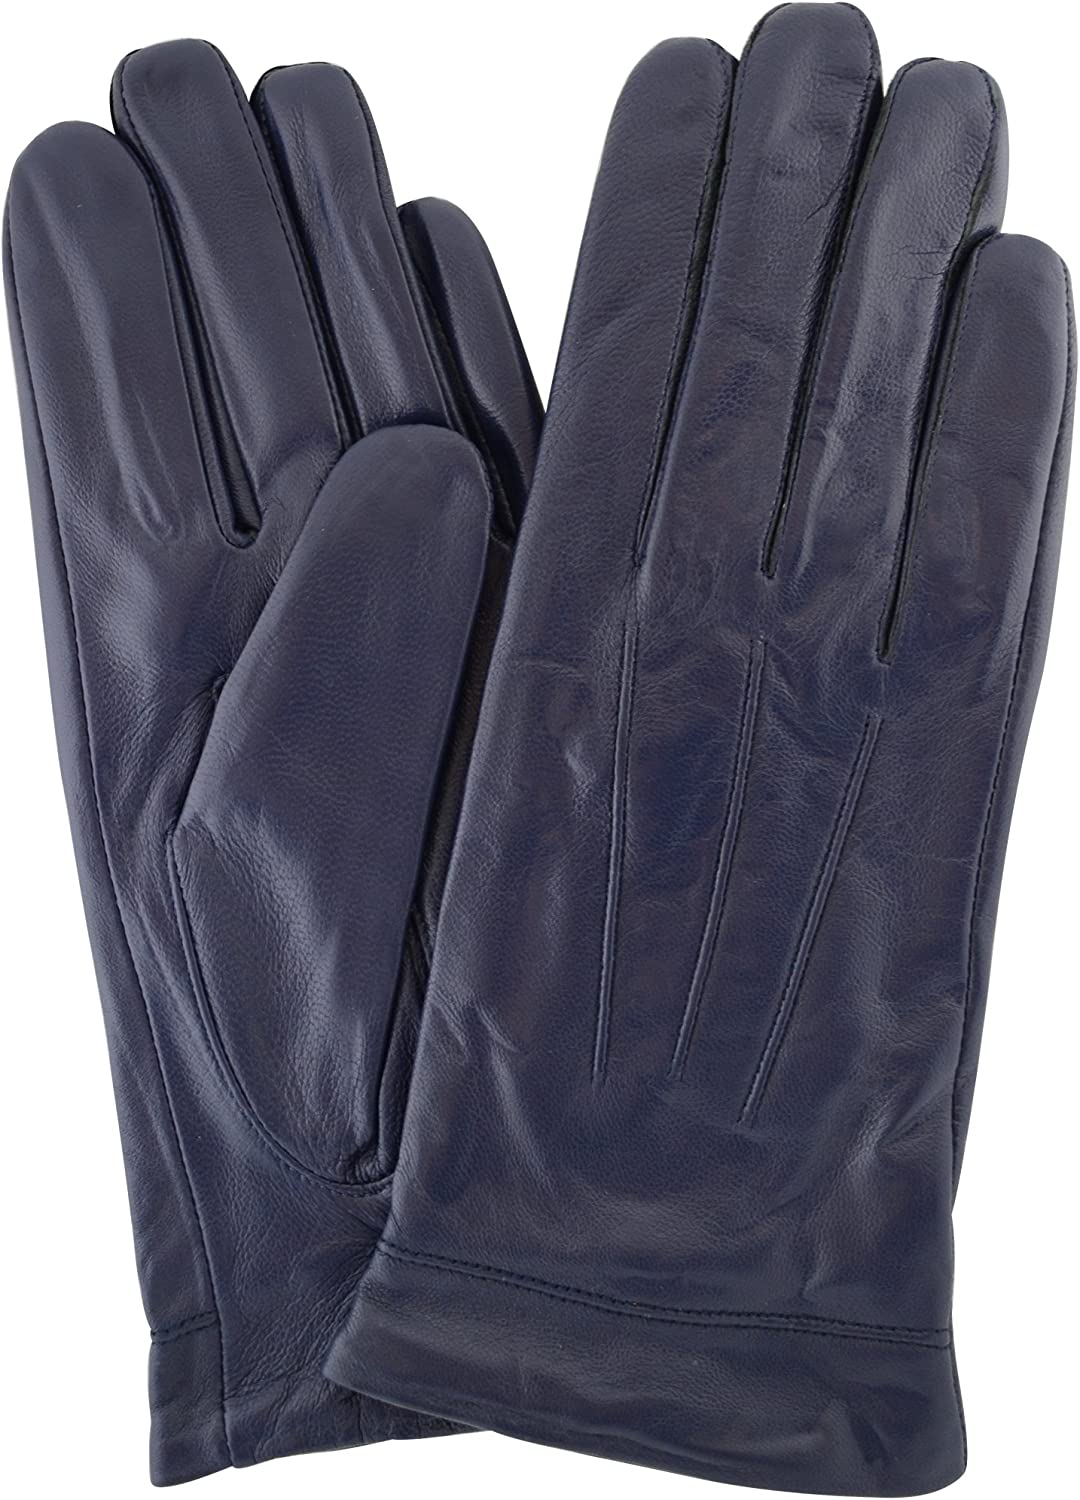 Ladies Butter Soft Leather Glove with 3 Point Woven Stitch design